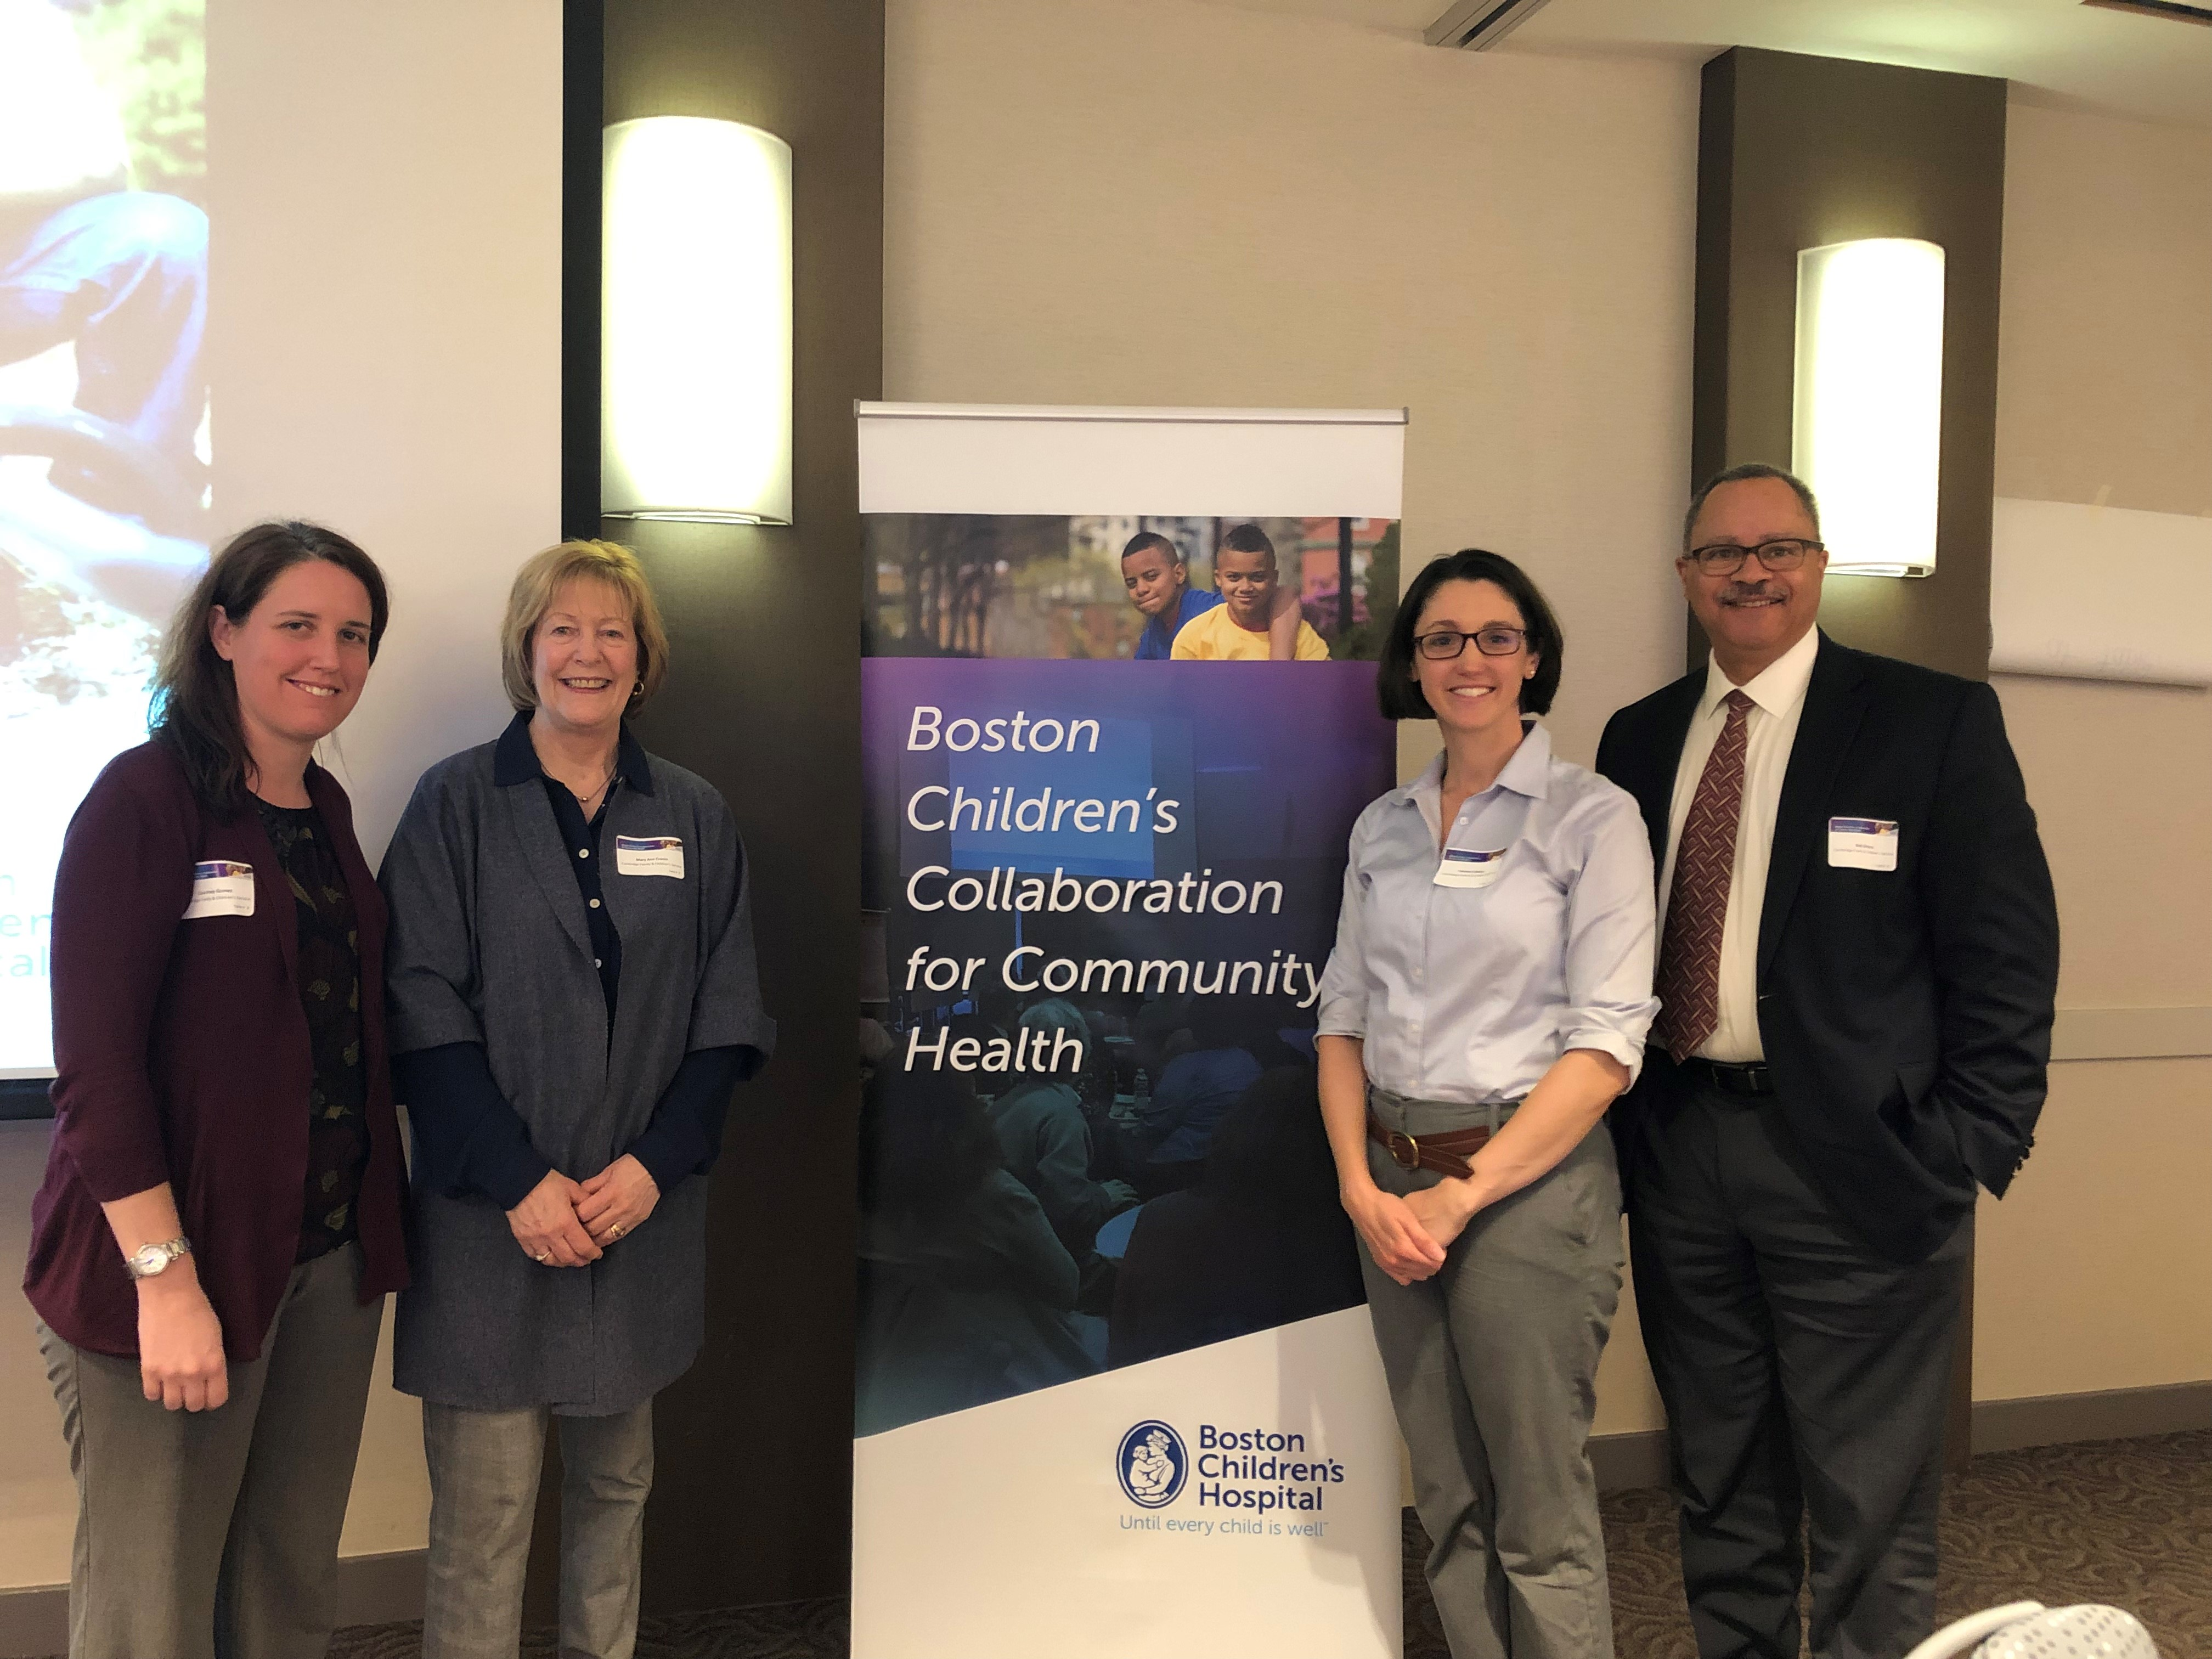 CFCS's Partnership with Boston Children's Hospital Kicks Off